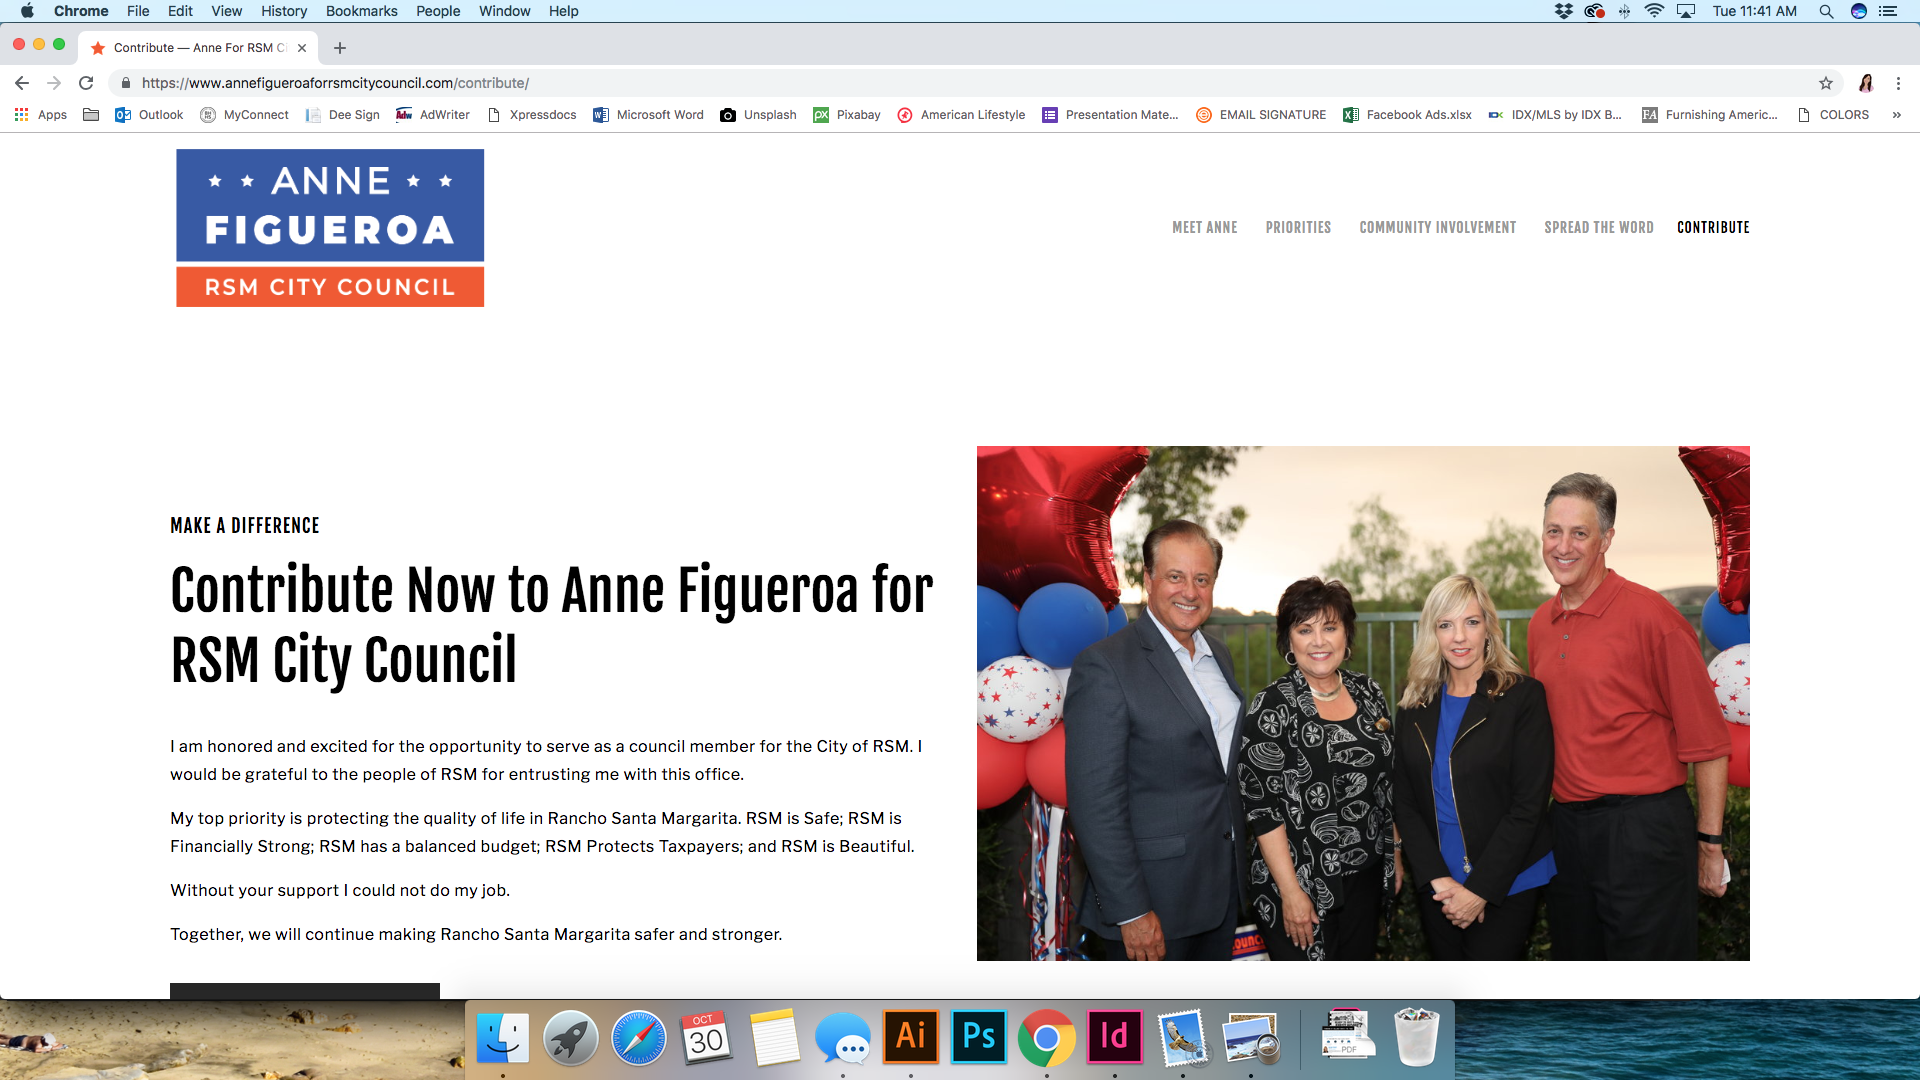 Anne Figueroa For RSM City Council